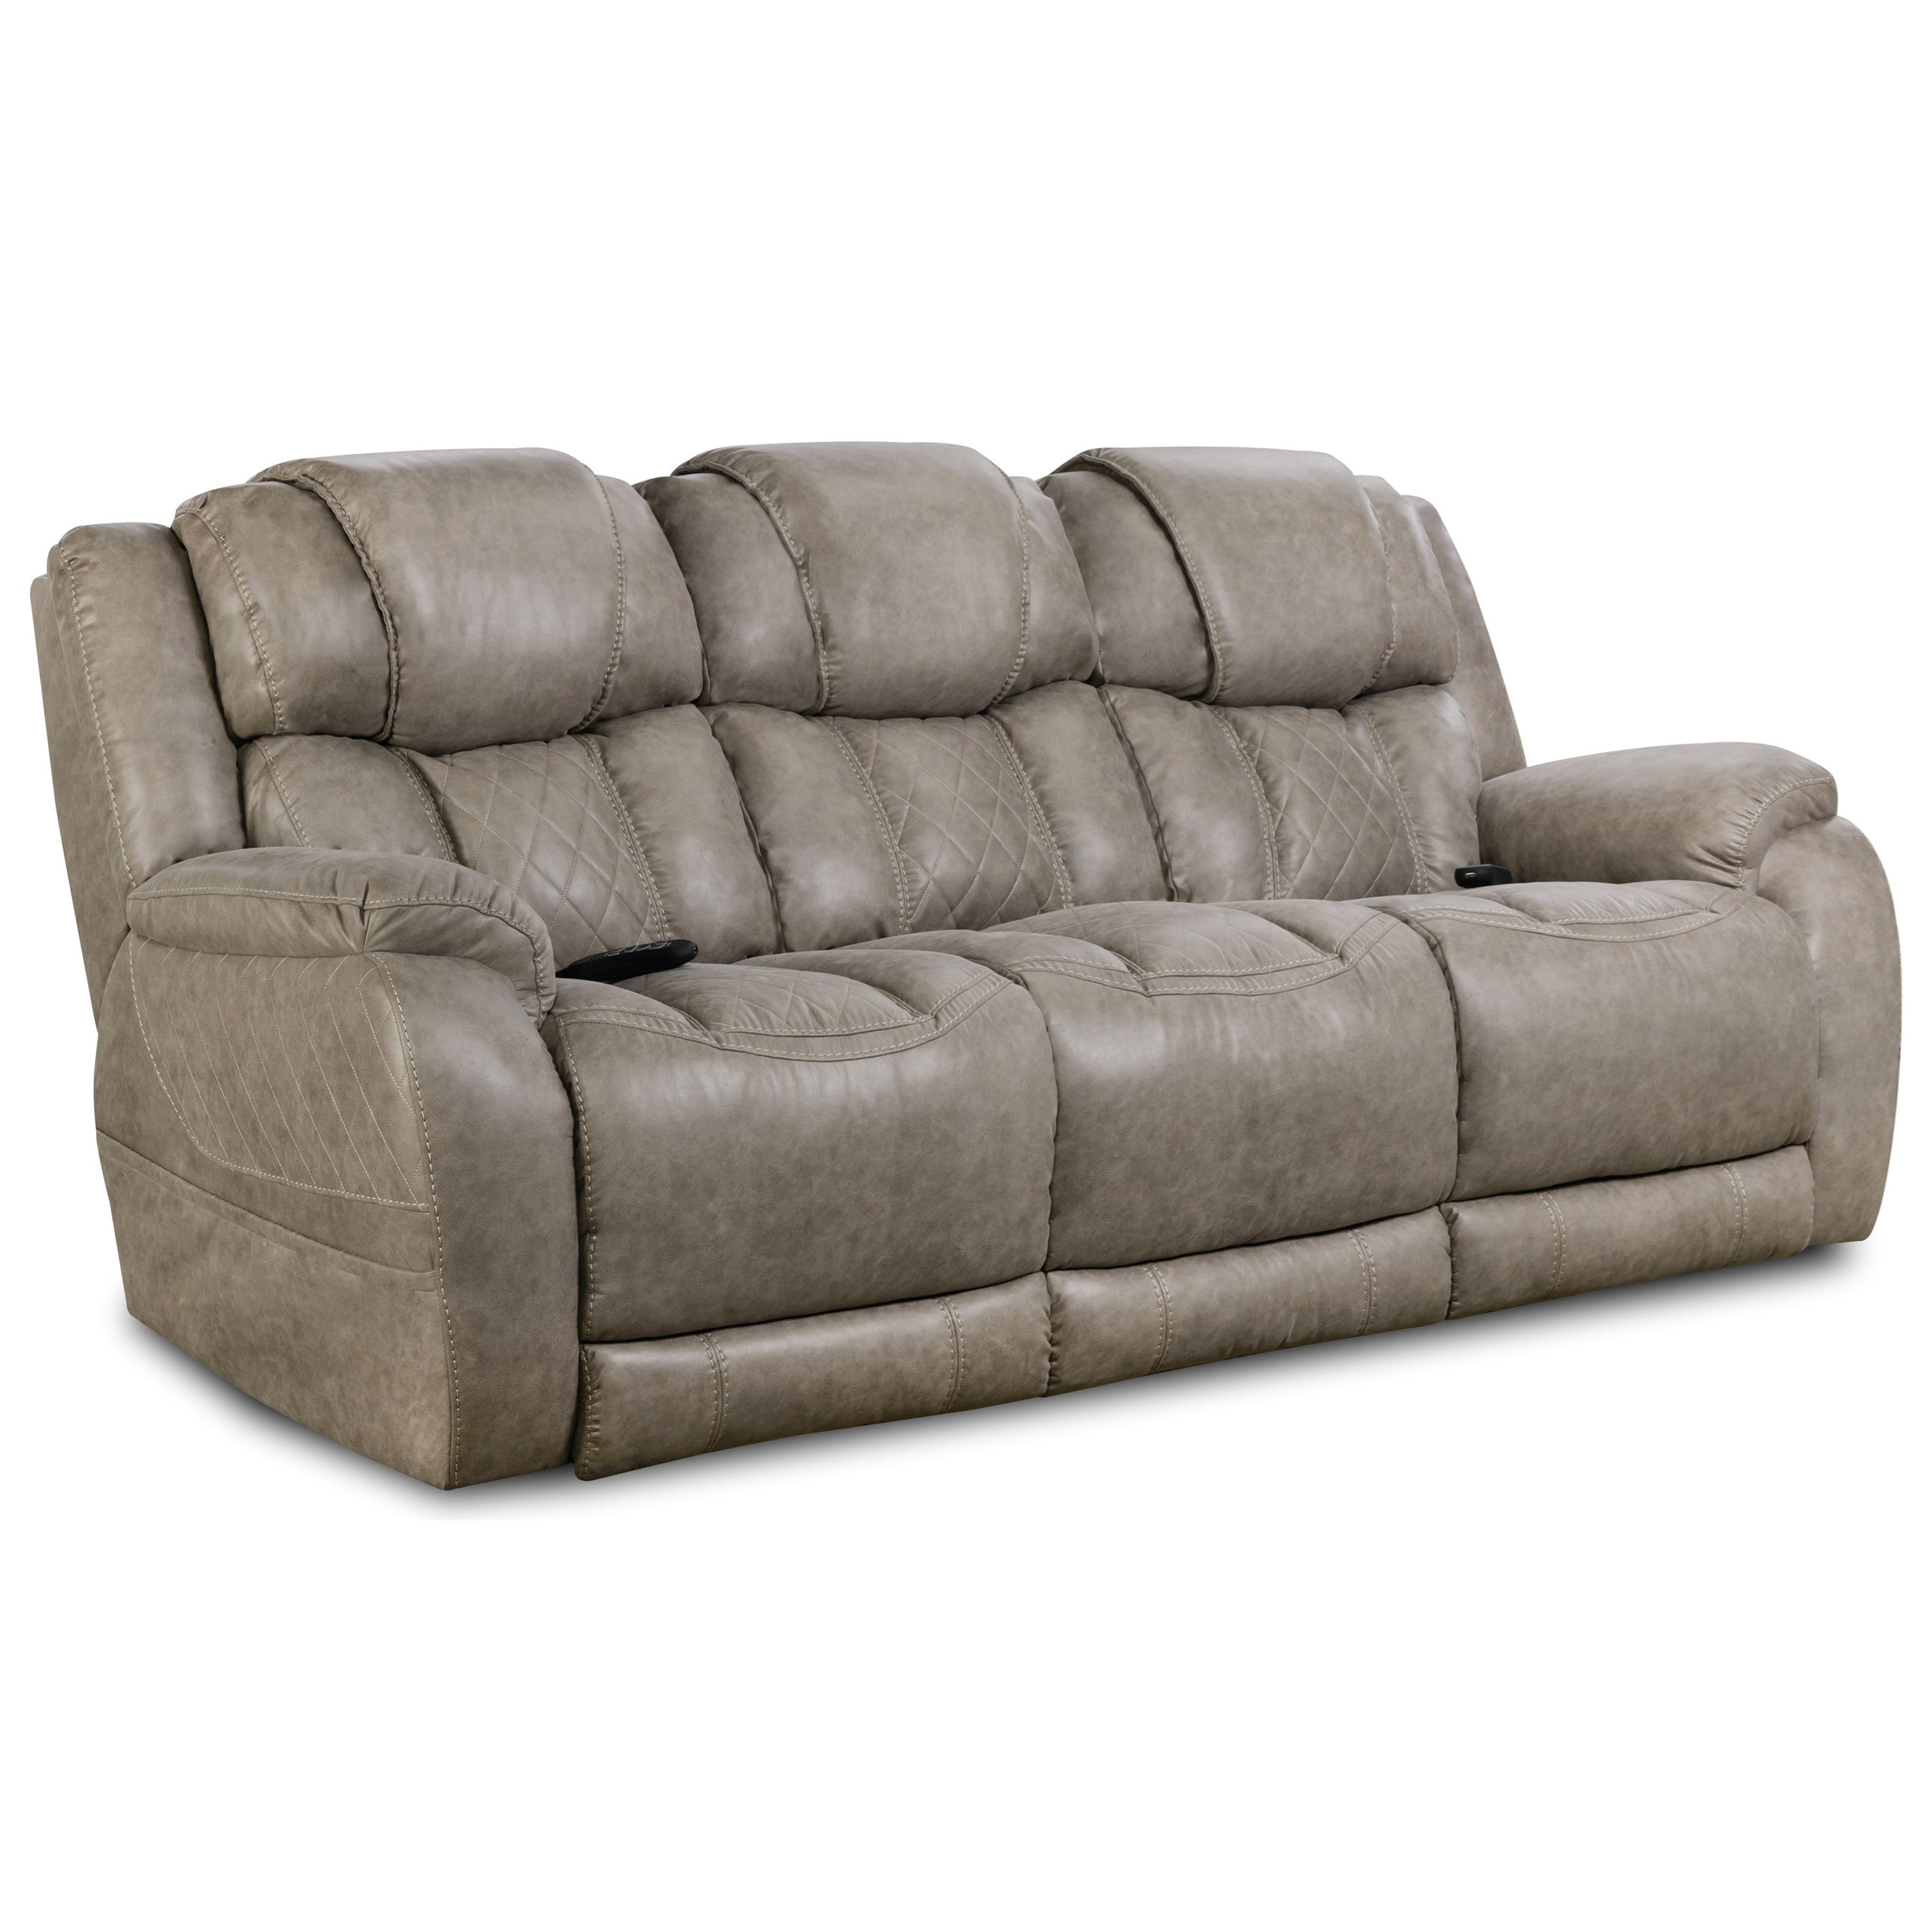 174 Double Reclining Power Sofa at Prime Brothers Furniture